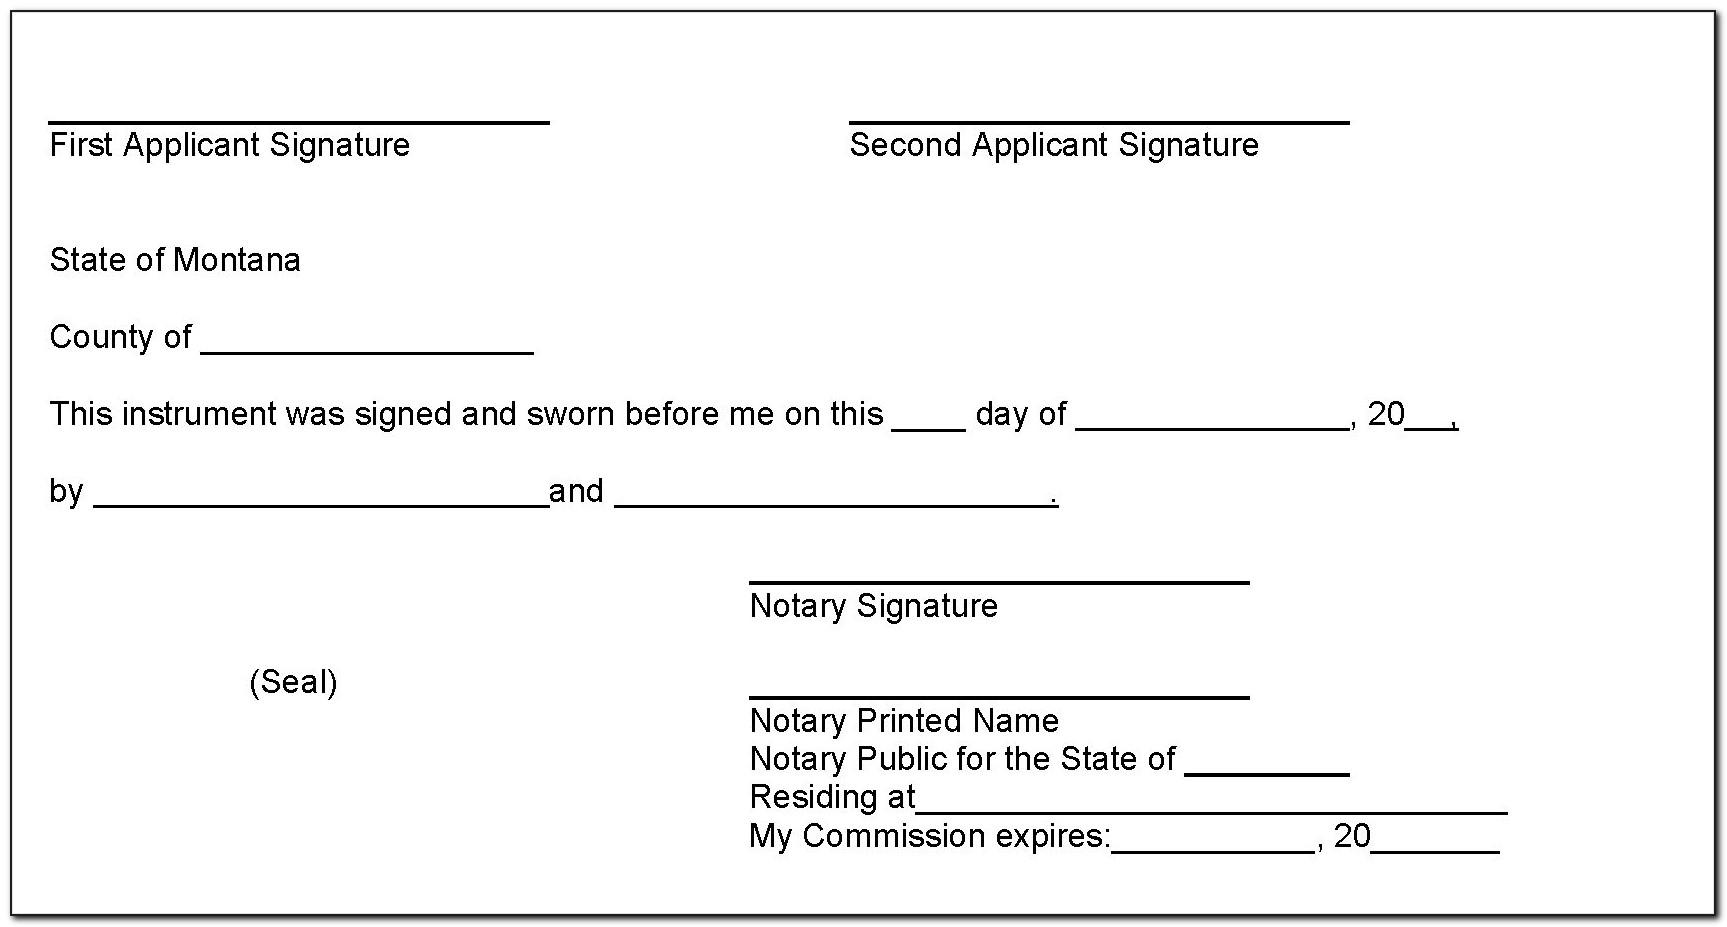 acknowledgement-notary-public-sample-philippines Oci Application Form From Philippines on card sample, form minor signature, sample for minor part signature,